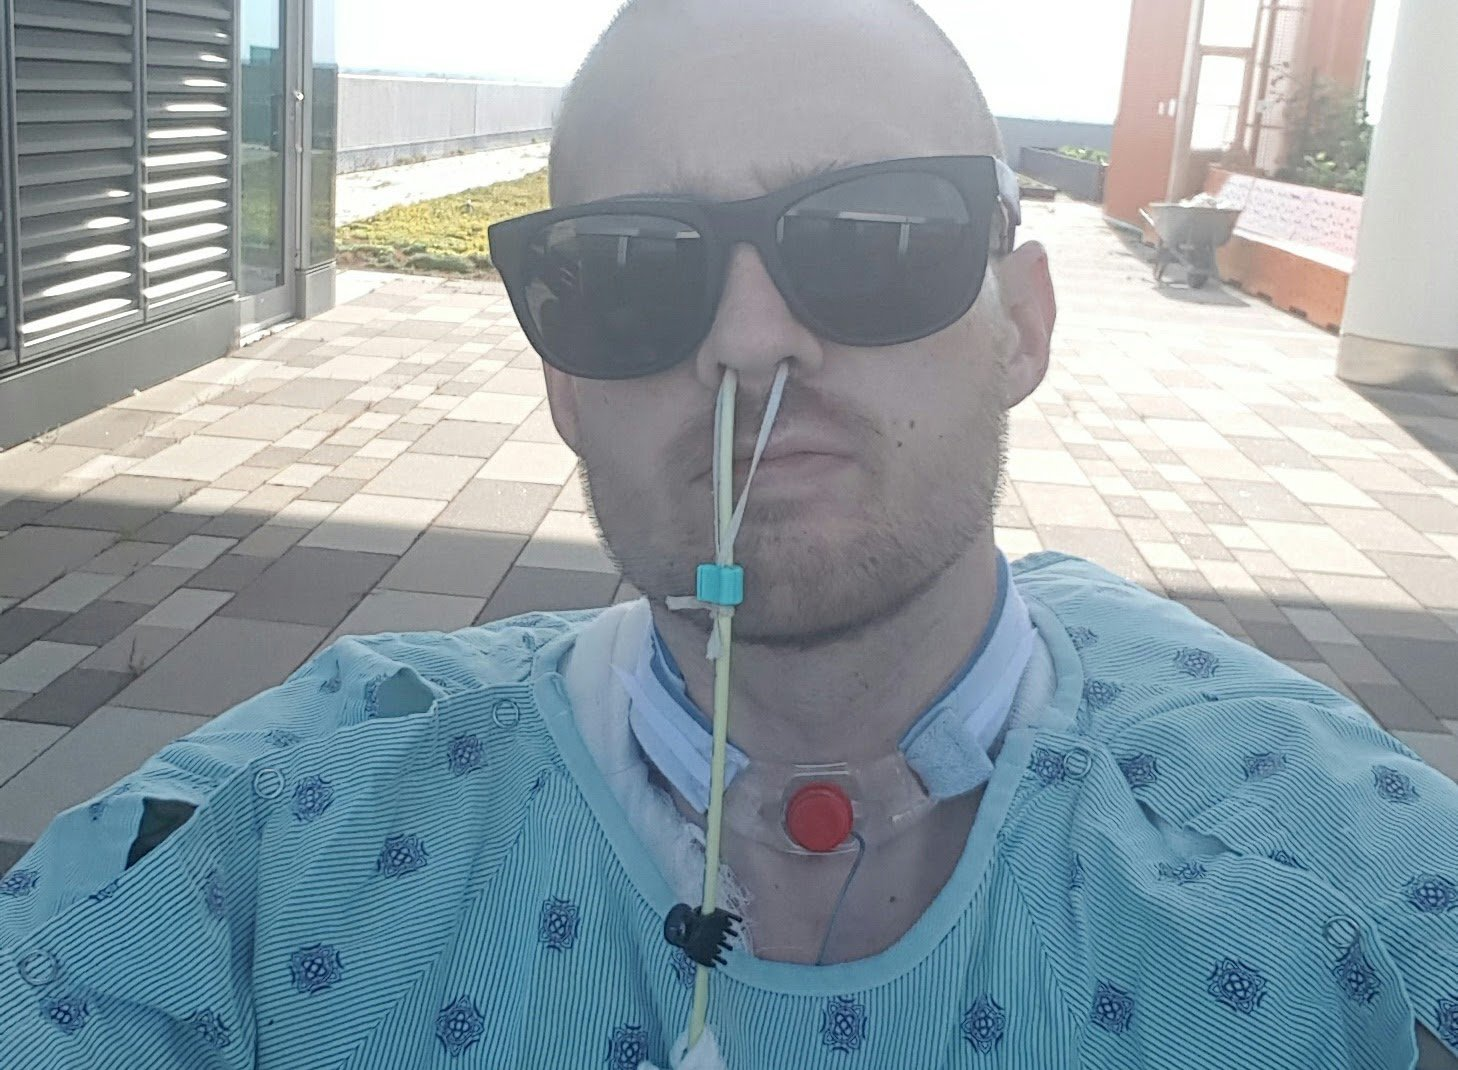 Joe pictured at the hospital during his surgery. MEET the man who had BOTH LEGS and his PENIS amputated after suffering a horrific crash caused by drink-driving that resulted in his truck landing on top of him. In April 2016, former rhino liner installer, Joseph Green (34), from Indiana, USA, had decided to go for dinner and a couple of beers with his mum and brother after he finished a long shift at work. He then was heading home but decided to stop off at a bar on the way. After a few drinks, he drove home, drunk and exhausted from his 20-hour-day at 2am the next morning. Ahead of him was a sharp turn in the road, as Joe began drifting off at the wheel, his foot slammed on the gas pedal and he lost control of his truck and couldn???t make the curved turn. He then fishtailed into a boulder on the road in front of him which sent his truck flipping out of control at 80 miles per hour. Joe was thrown out of the truck and landed on the ground, breaking his left shoulder, sternum, ribs, tailbone and had a collapsed lung, as well as a displaced hip and left knee. The moment he landed on the ground, his truck landed on top of him and an inferno ensued; resulting in third and fourth degree burns on half of his body from the waist down. Luckily a man who lived nearby appeared and pulled him out of the wreckage and he was taken to a local hospital. He stayed in the hospital for four months and underwent 14 surgeries including; both of his legs and his penis had to be amputated due to his burns, he had skin grafts and prosthetic legs were fitted. It took him two years to learn how to walk on his prosthetic legs. He is now an advocate for campaigns that encourage drivers not to drink-drive and to be safe on the roads. Joseph Green / MDWfeatures